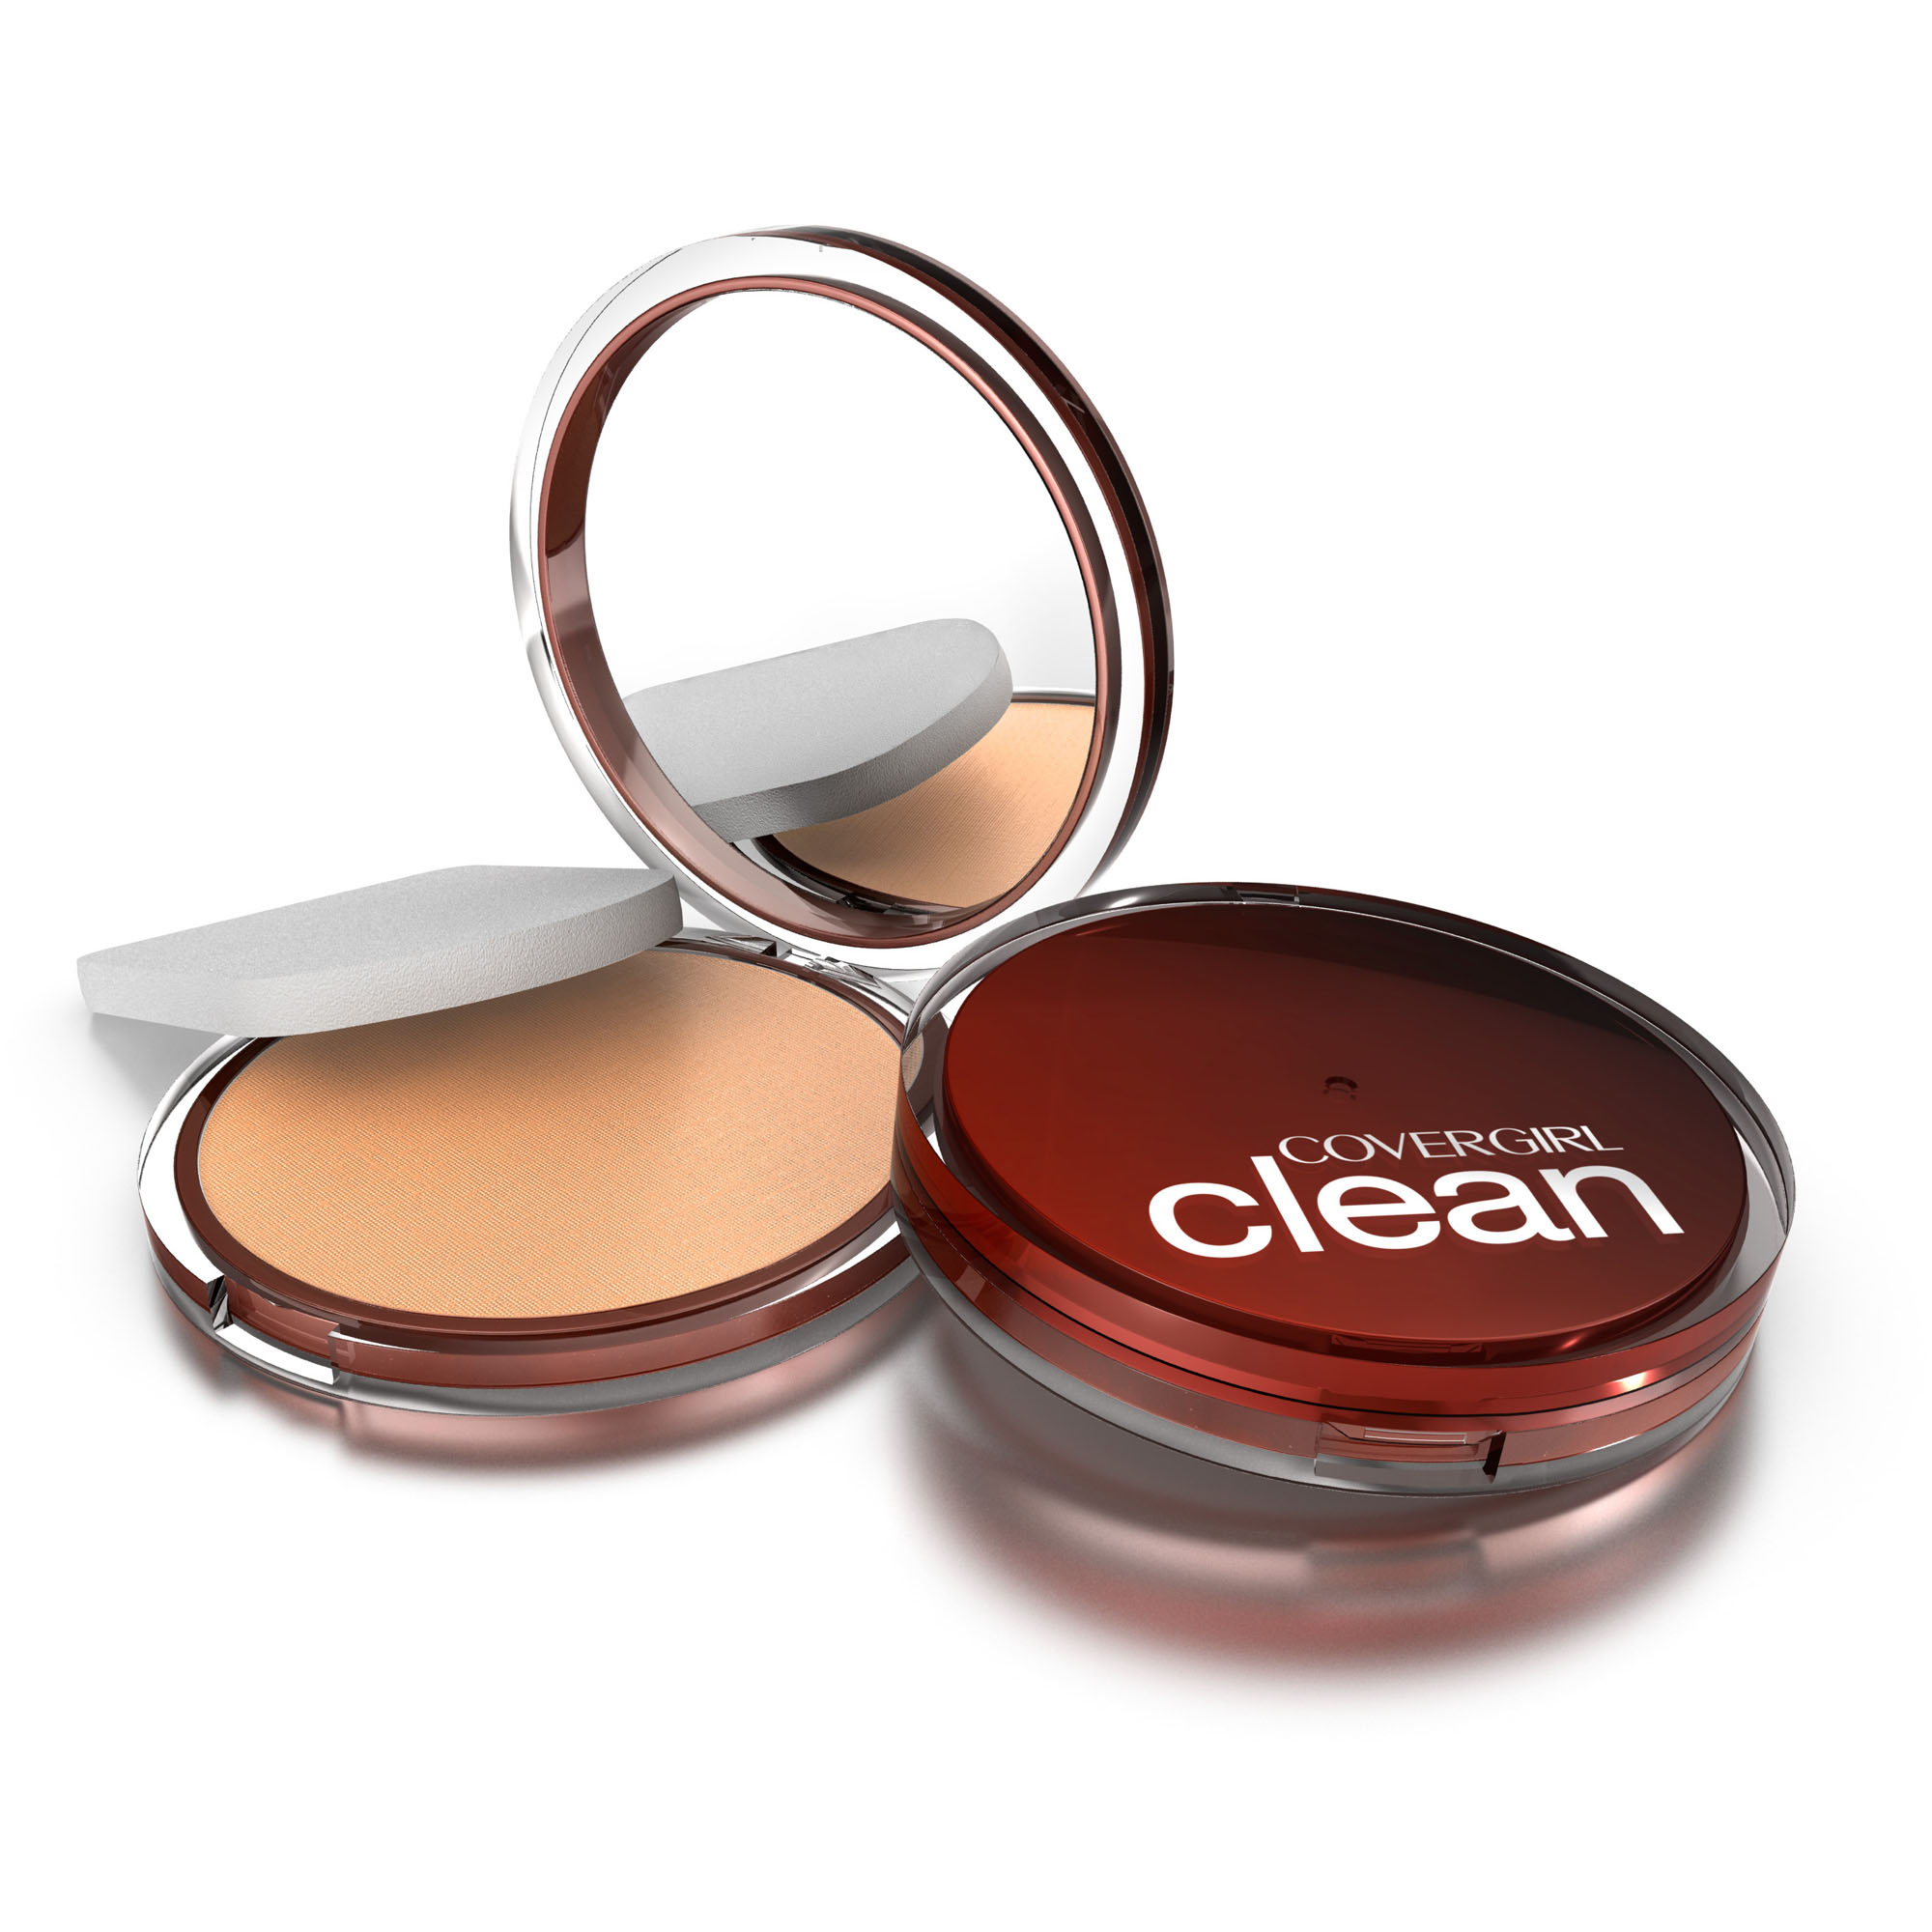 CoverGirl Clean Pressed Powder Foundation Creamy Natural, .39 Oz